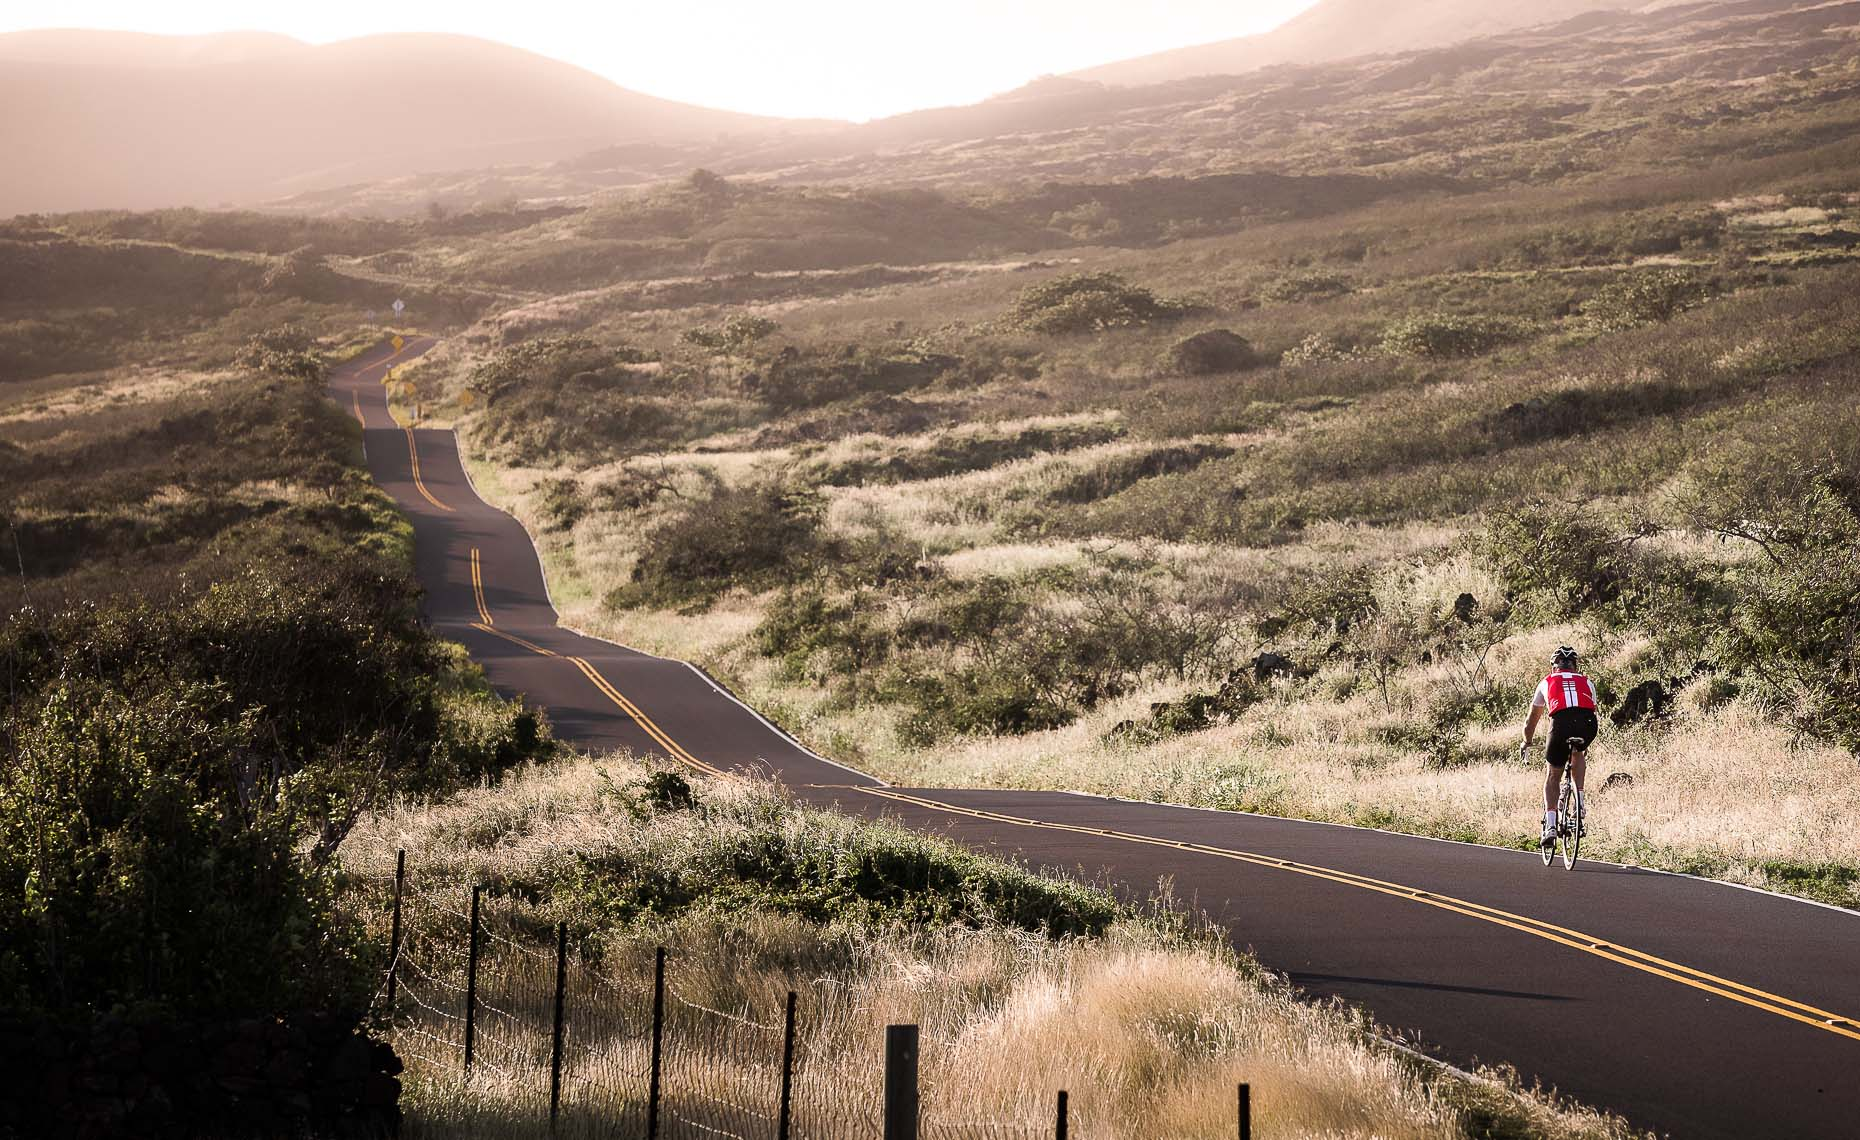 Canadian Road riding athlete in maui on feature photography article for paved magazine.